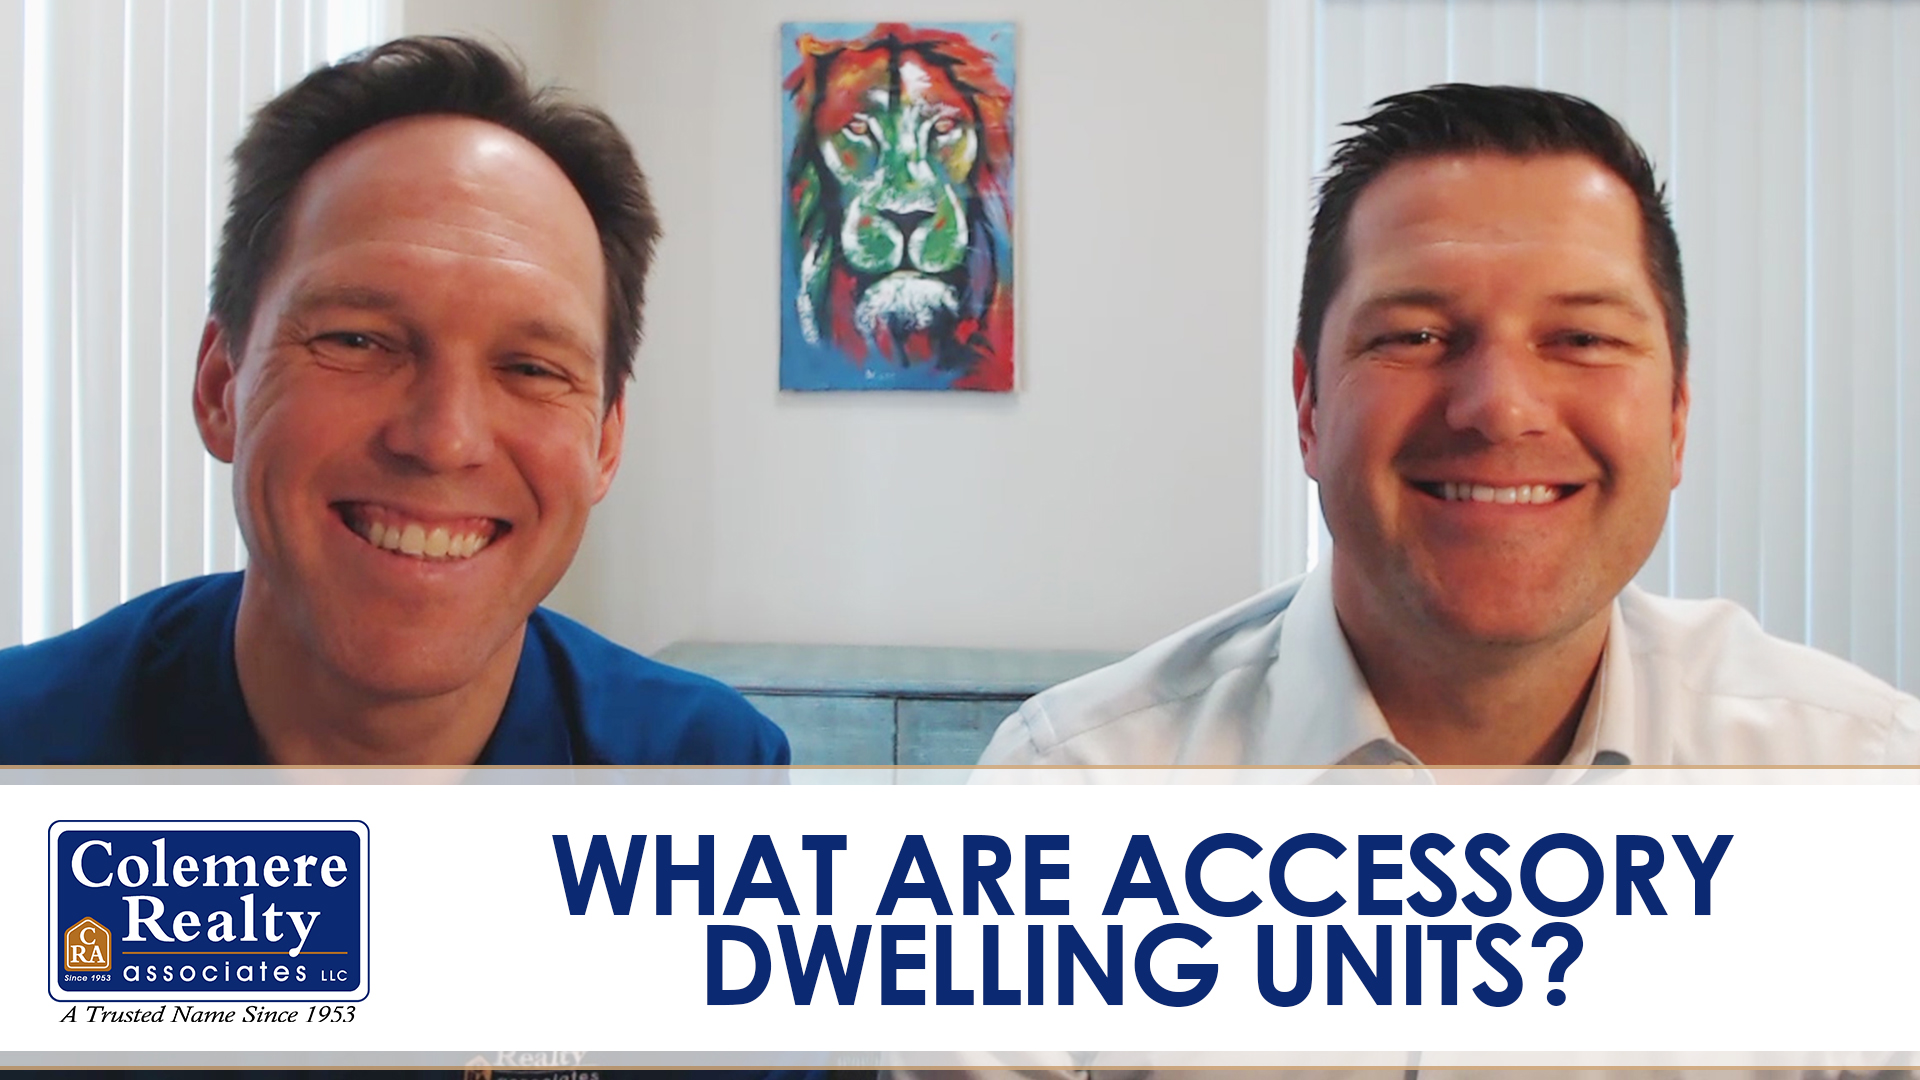 Check Out This Quick Guide to Accessory Dwelling Units